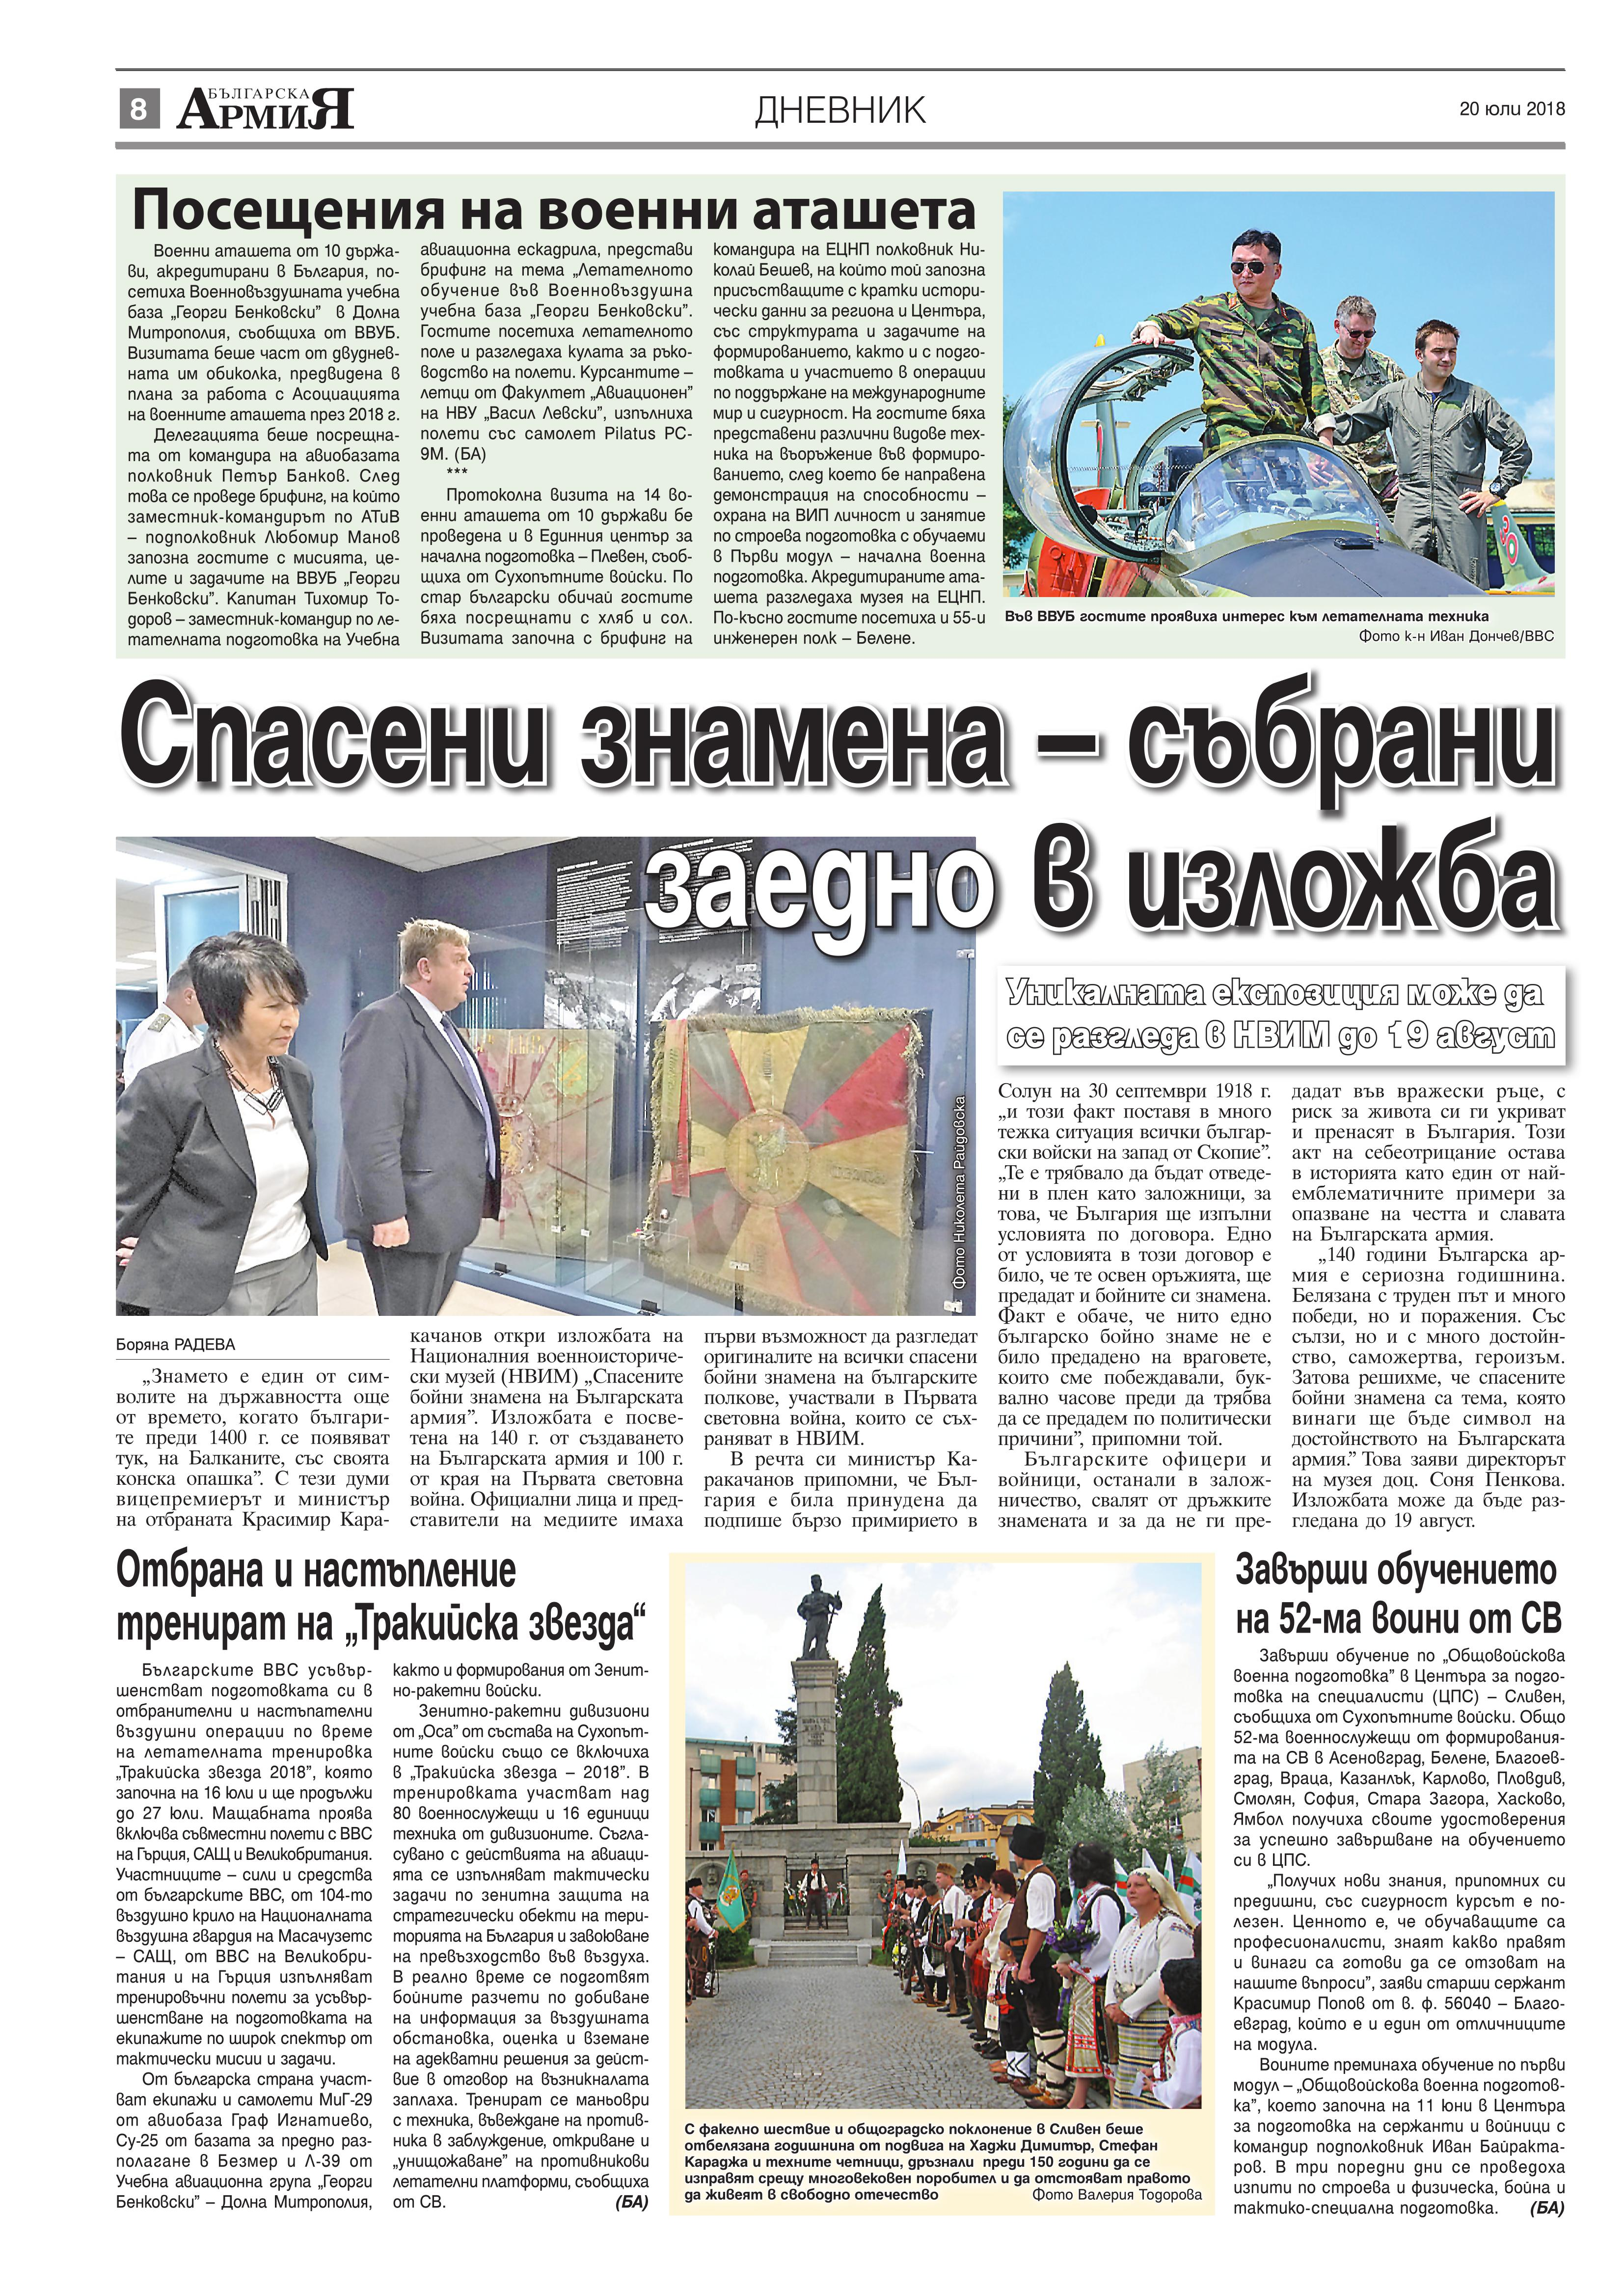 http://armymedia.bg/wp-content/uploads/2015/06/08.page1_-56.jpg